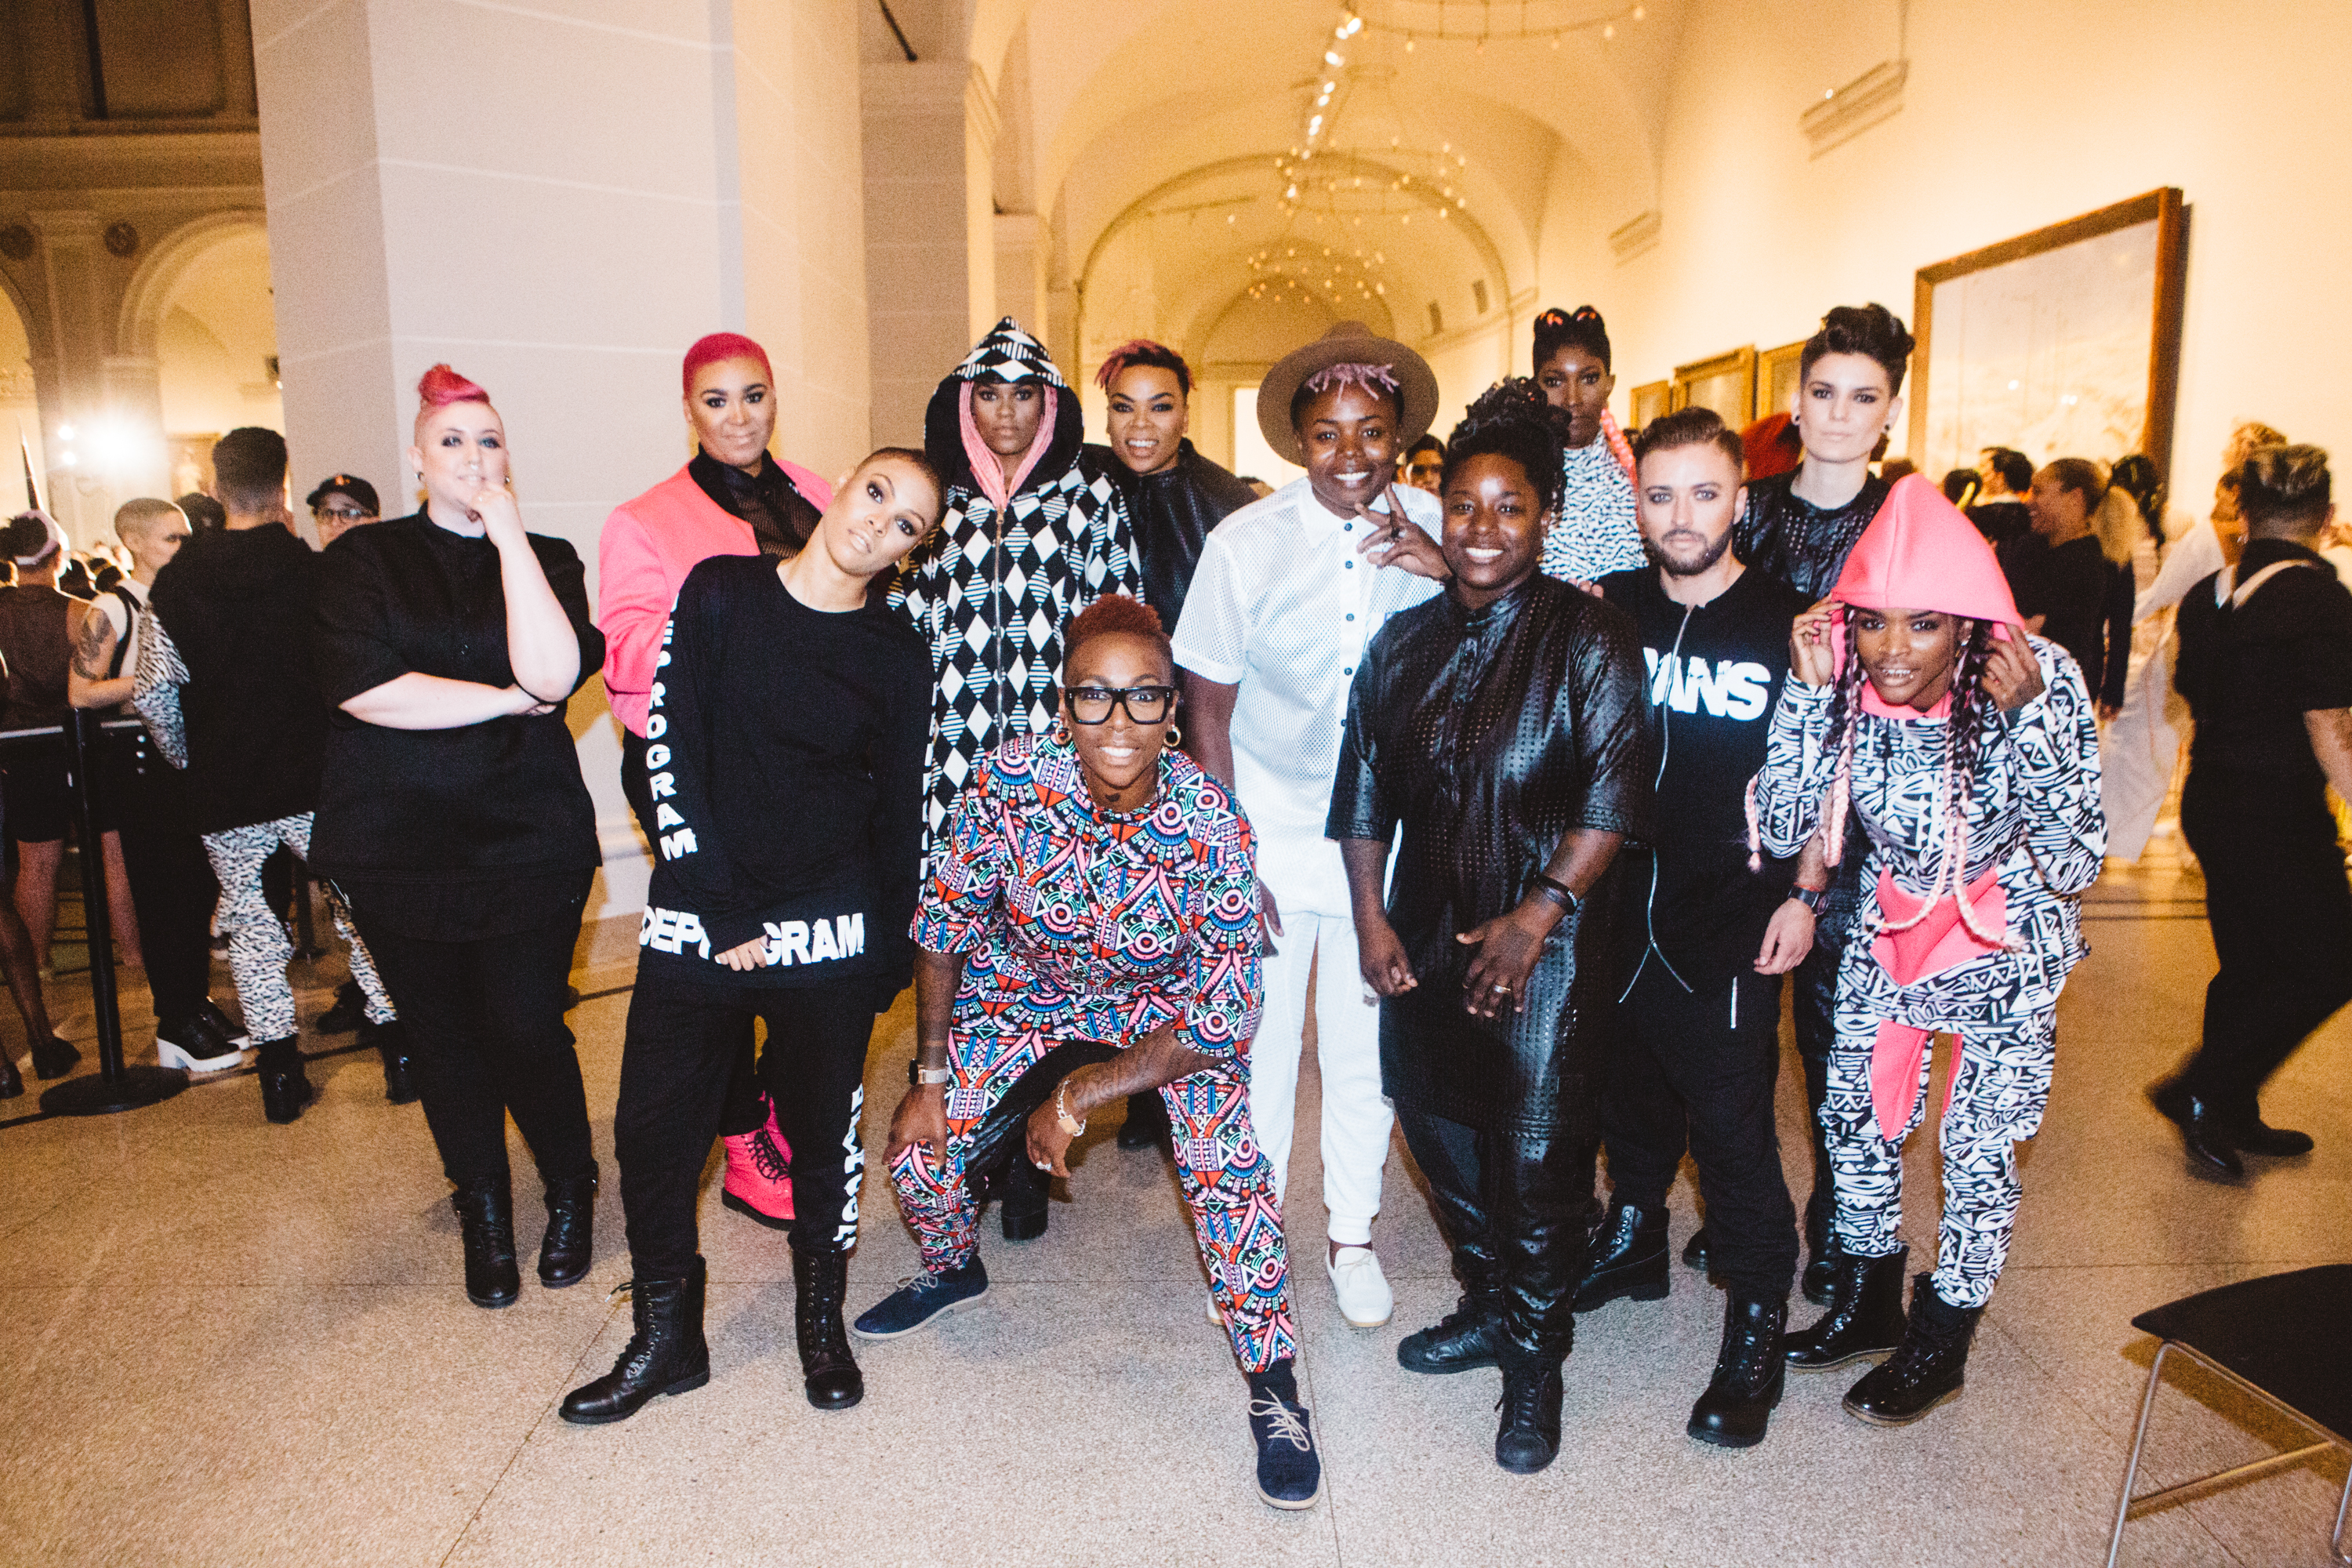 the models and designers after the show (Kirst Callahan, Jazzmyne Robbins, Janeeka Muse, Shalisa West, Madam Muse, Charlie Poulson, Alyssa Evans, Gina Yashere, Latoya Robert, Uzo Amaka, Stoney Michelli, Whitney Wheat, not pictured Millz Serano)